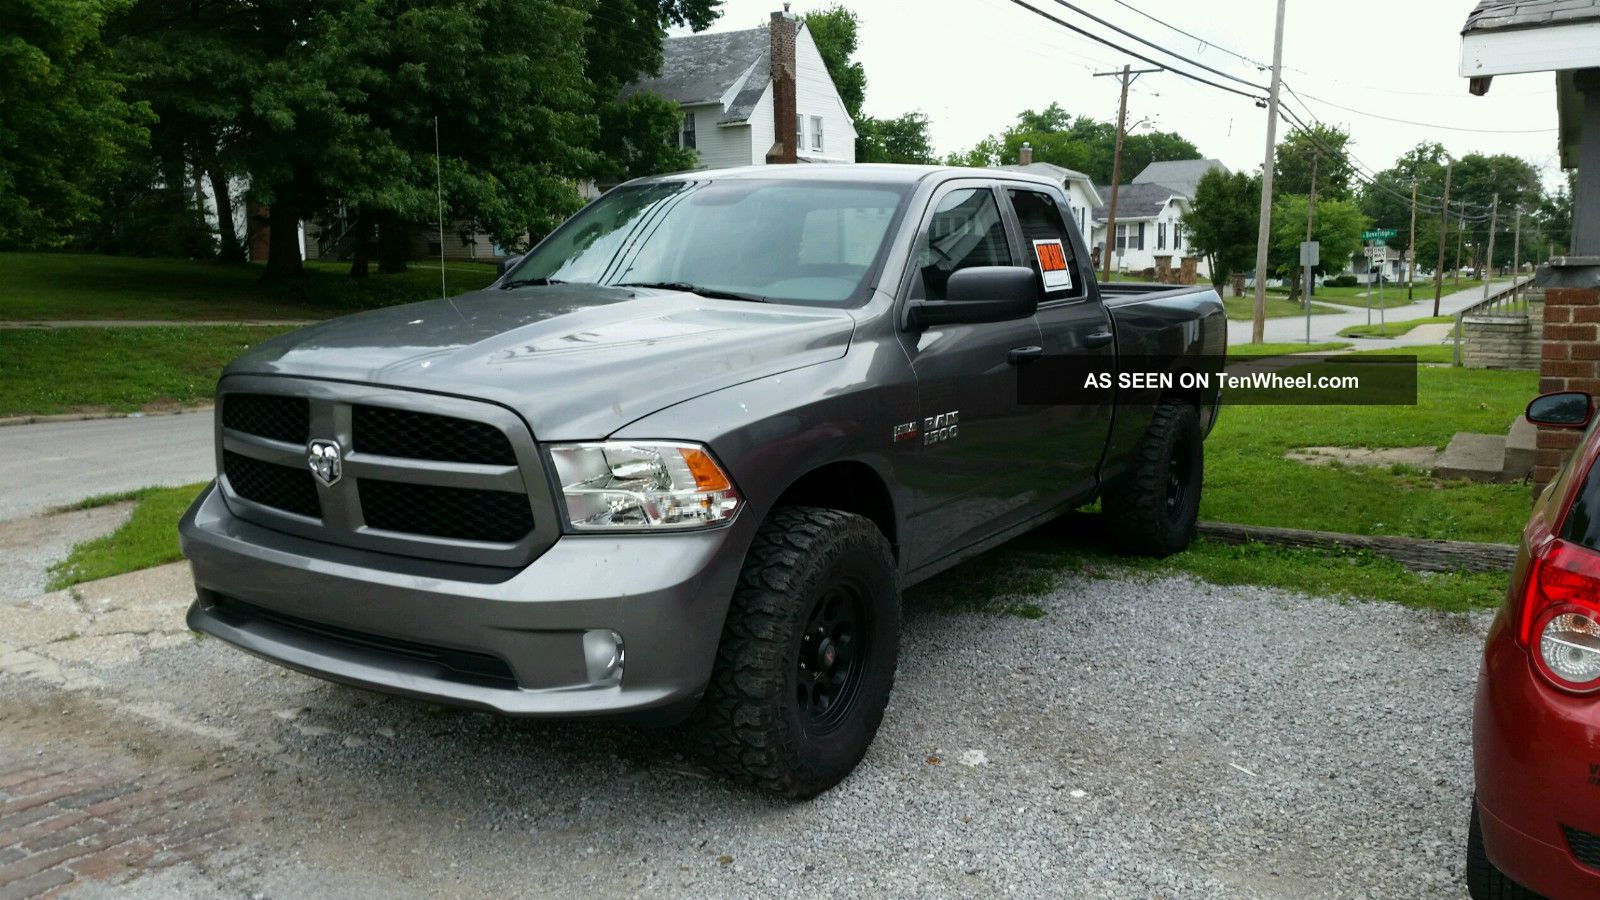 2013 Dodge Ram 1500 4x4 Ram 1500 photo